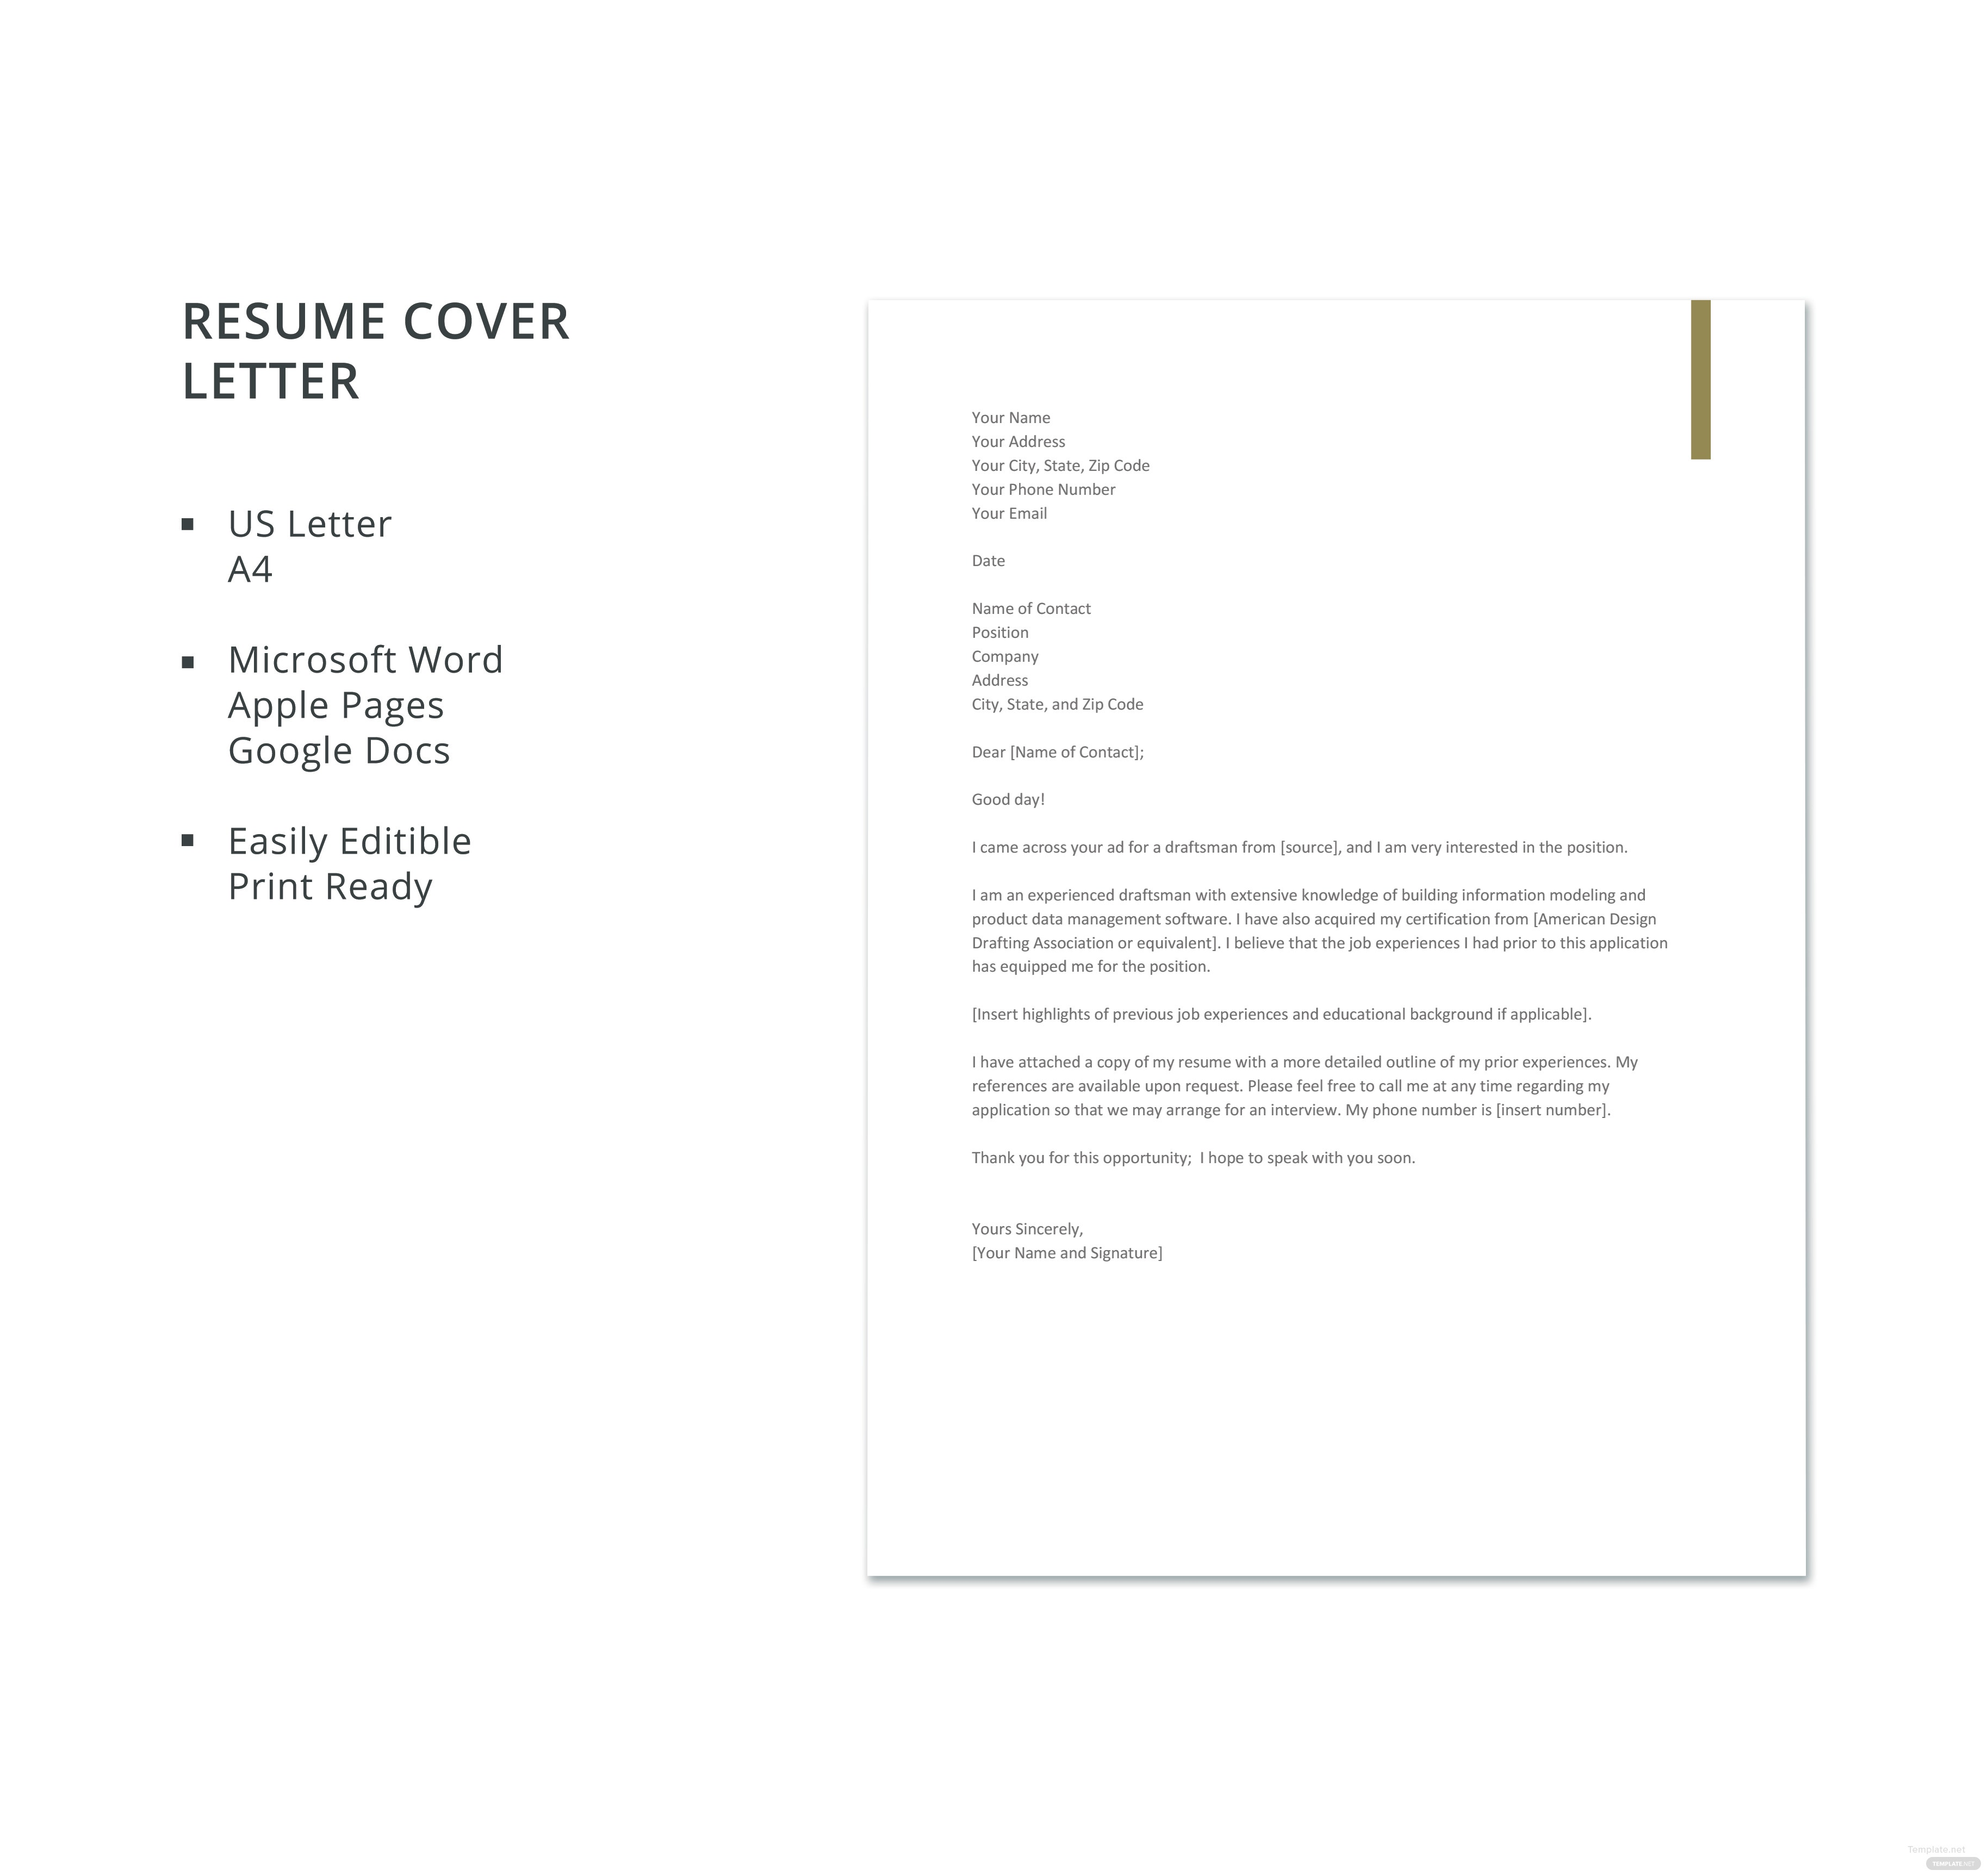 Free Draftsman Resume Cover Letter Template In Microsoft